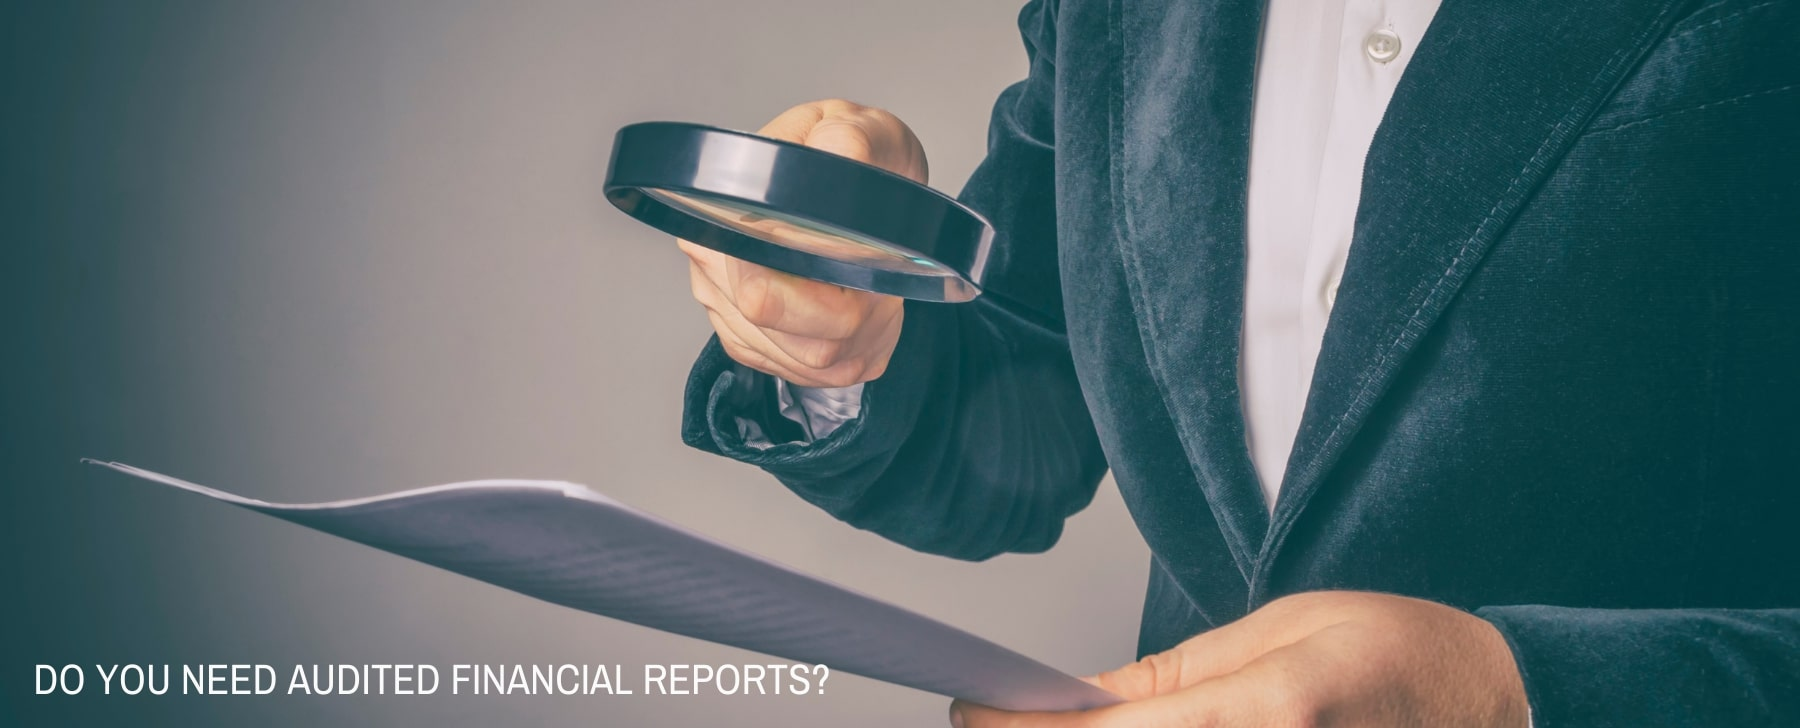 audited-financial-reports